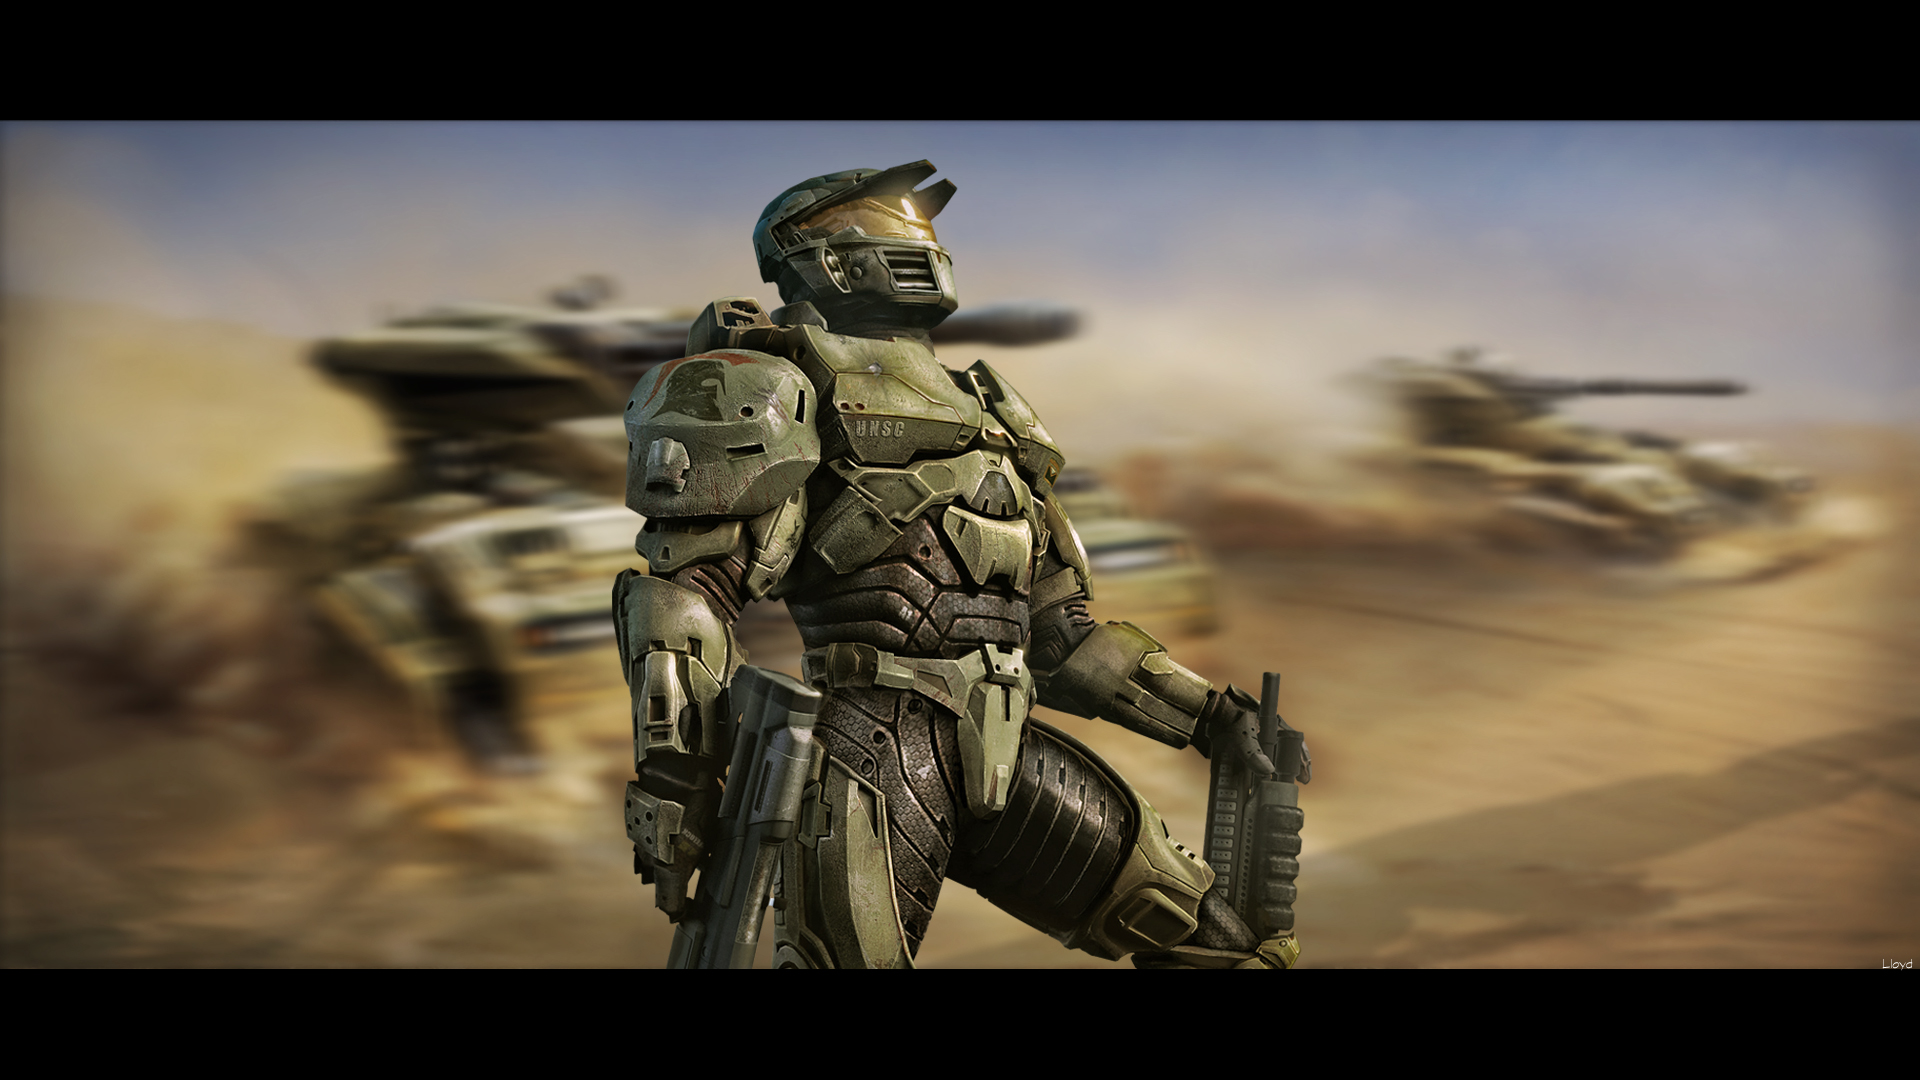 Halo Wars Wp 4 by igotgame1075